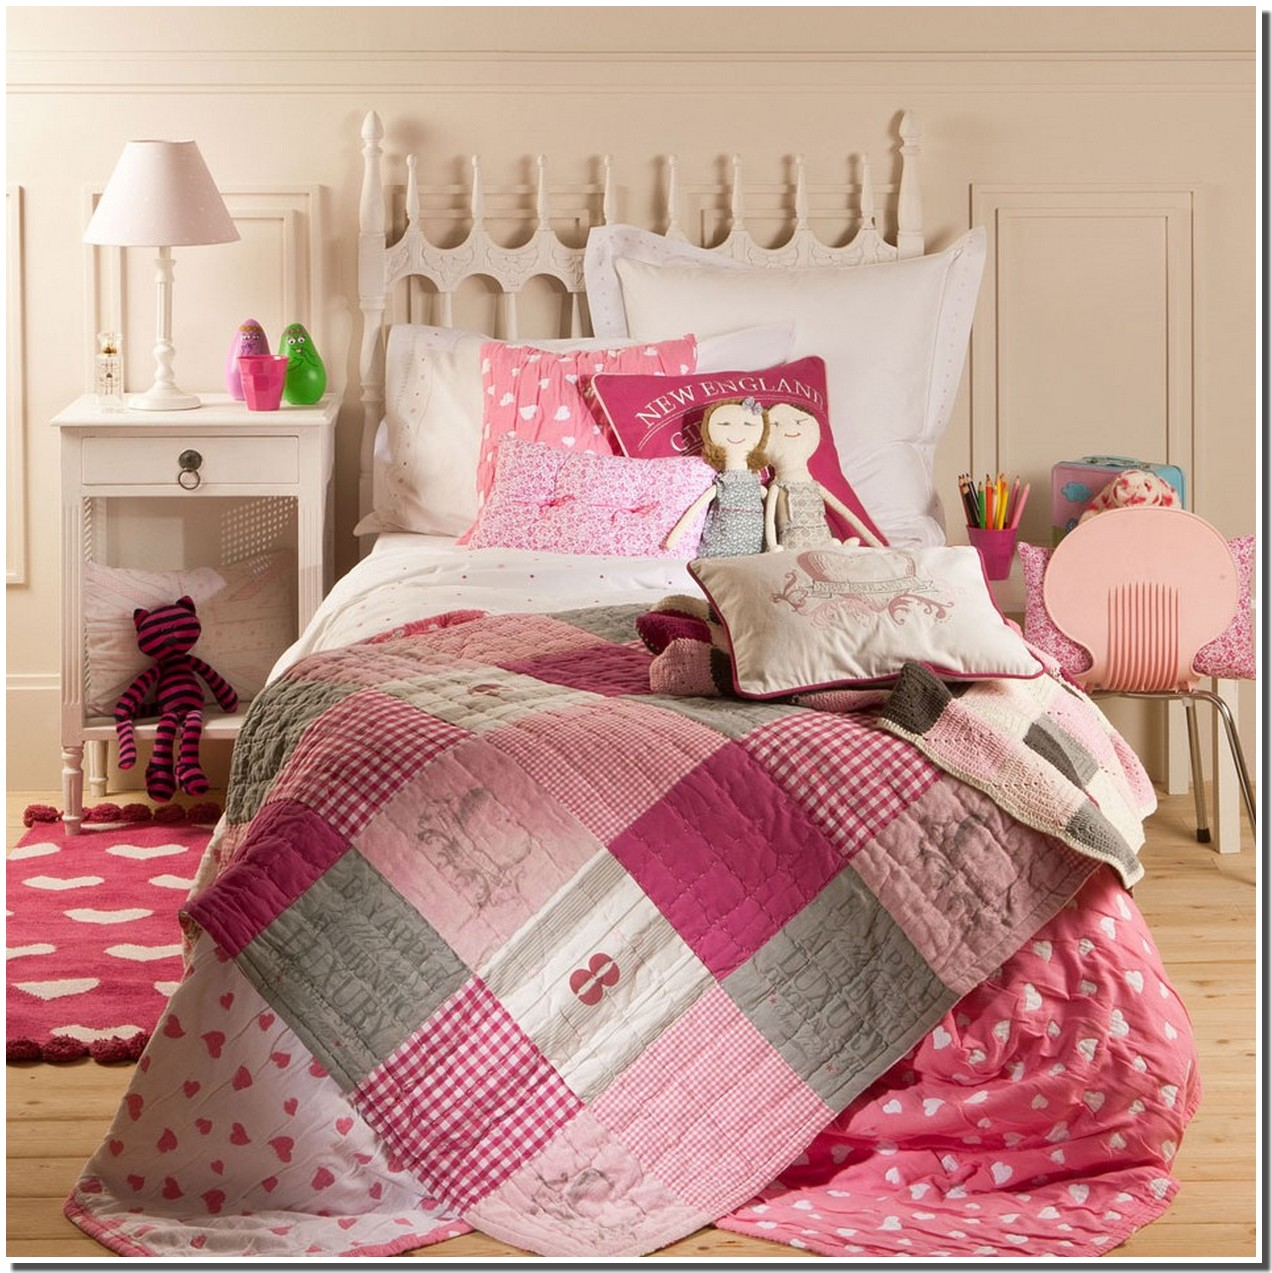 Nassima home septembre 2012 for Chambre zara home